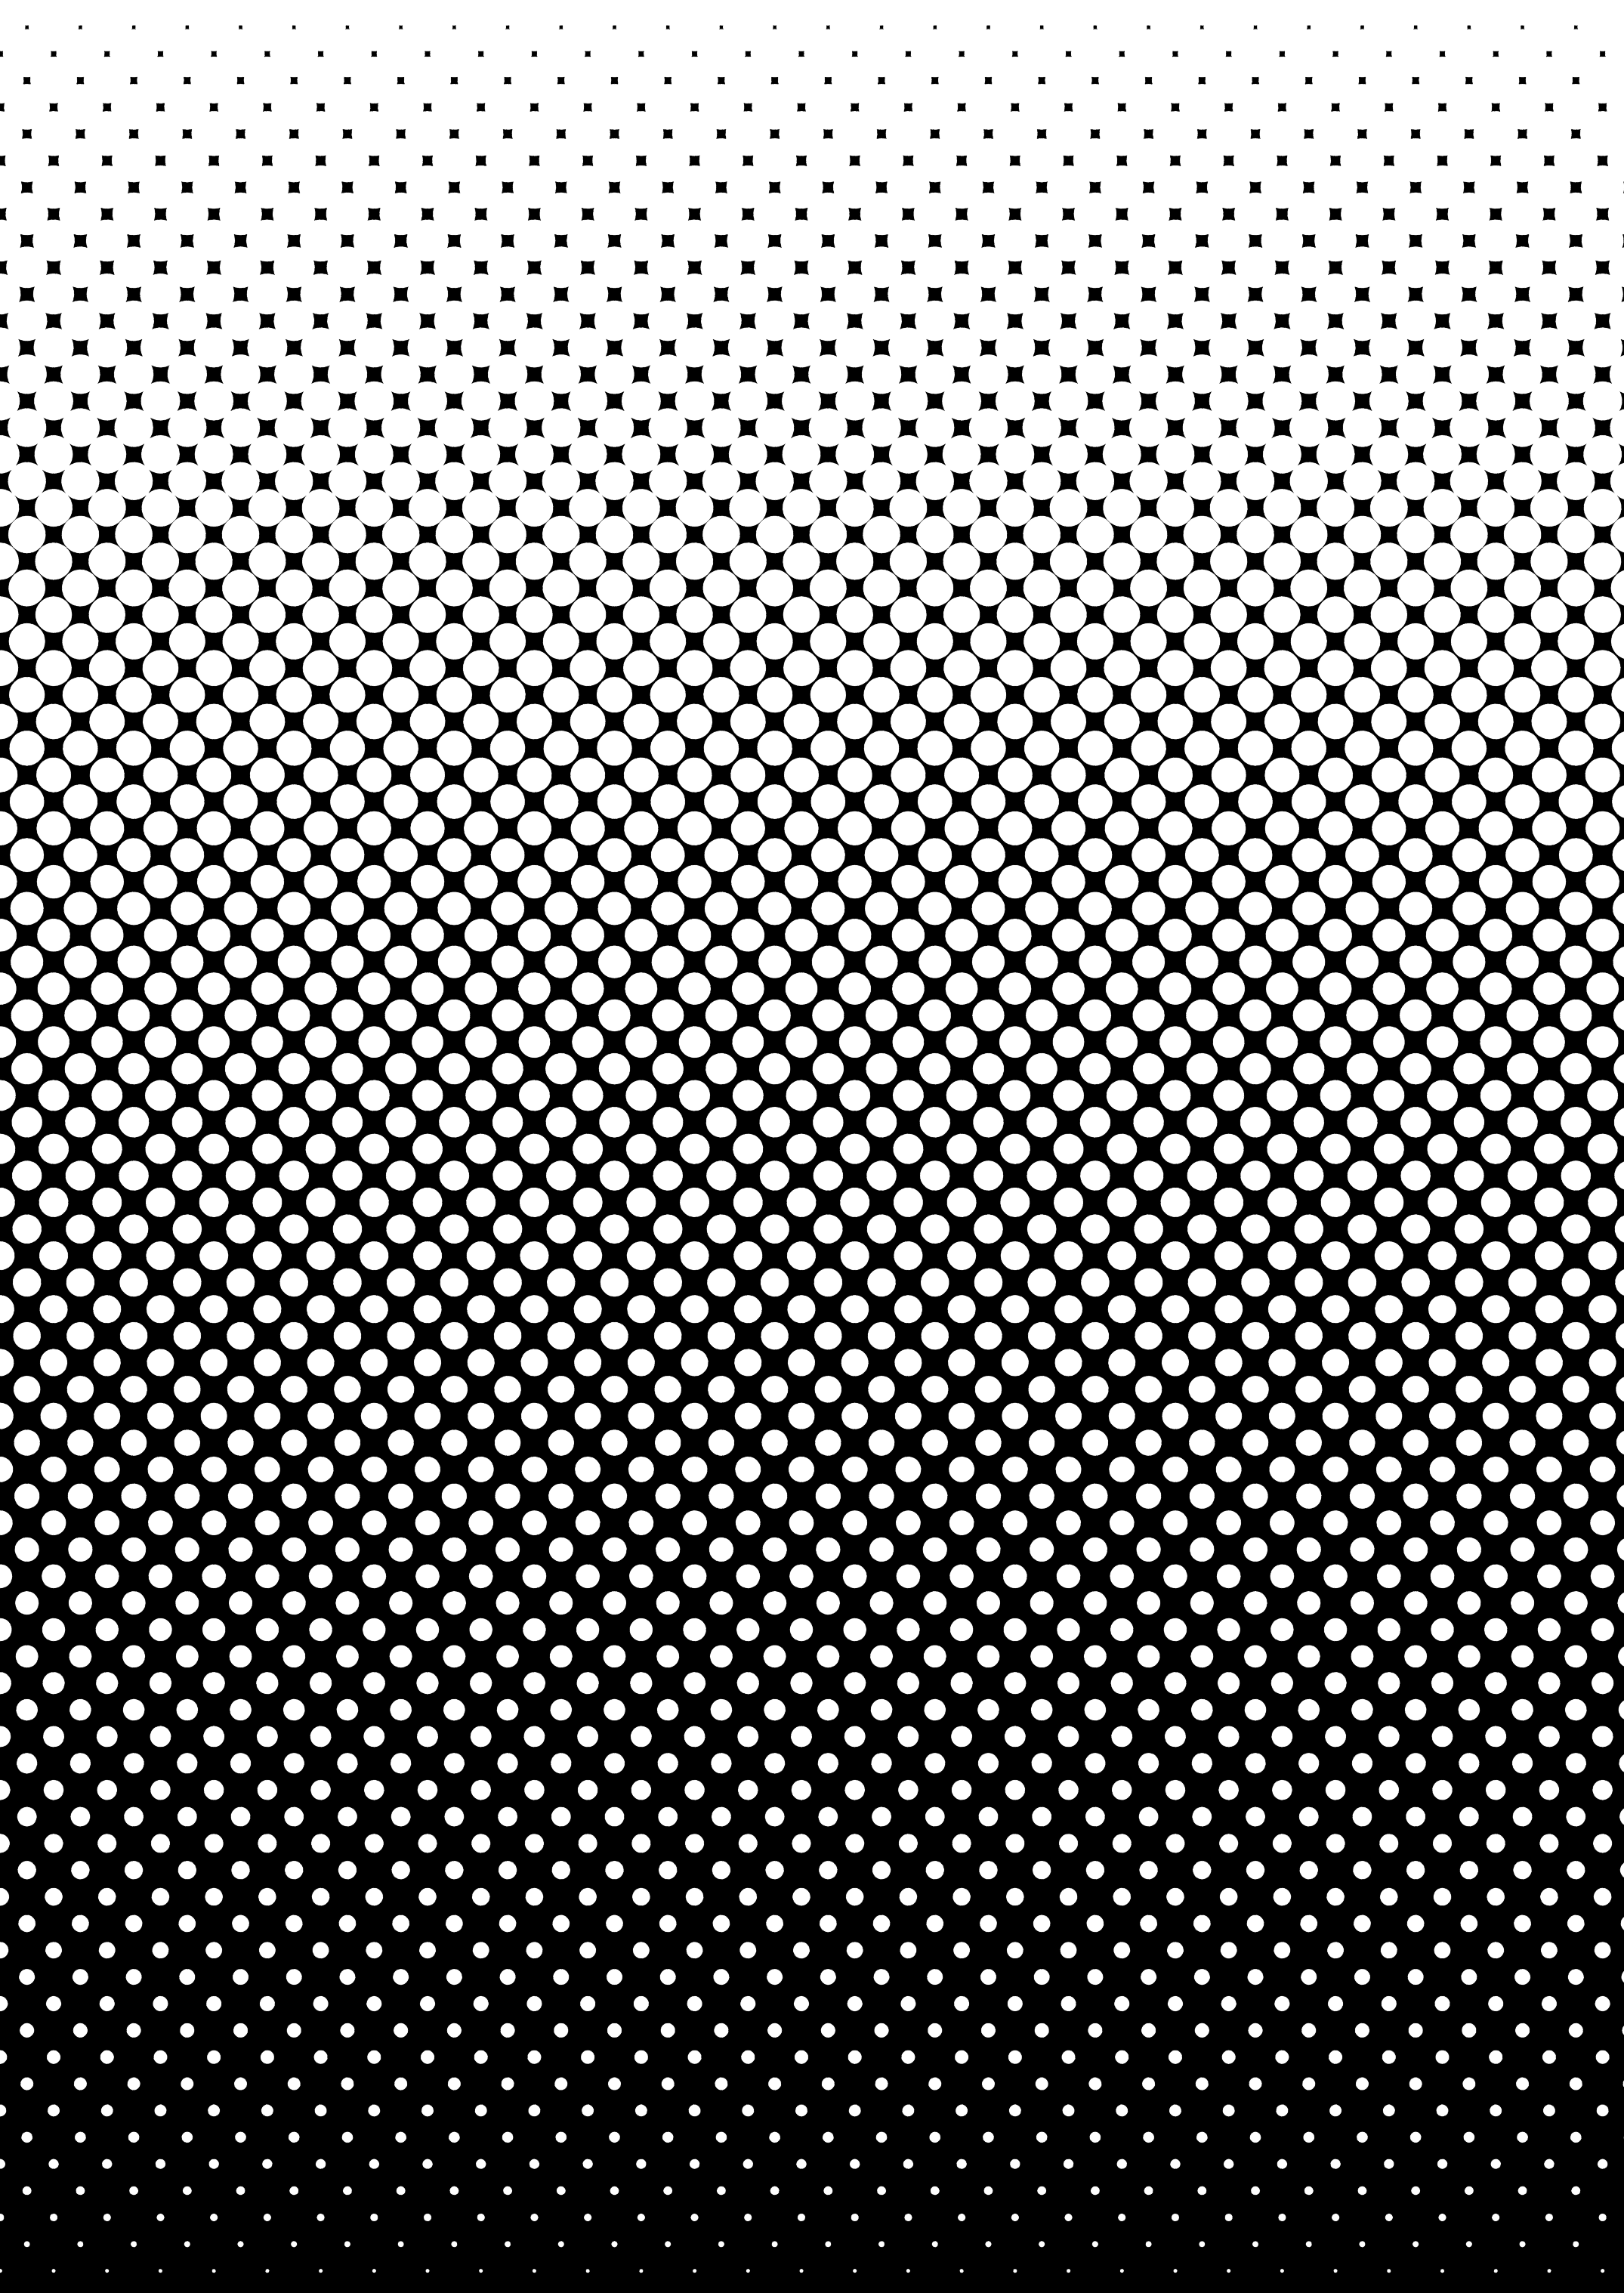 Black And White Screen Tone Style Gradient By Mrcentipede D7ga0hu Png 2150 3035 Screentone Texture Design Graphic Patterns